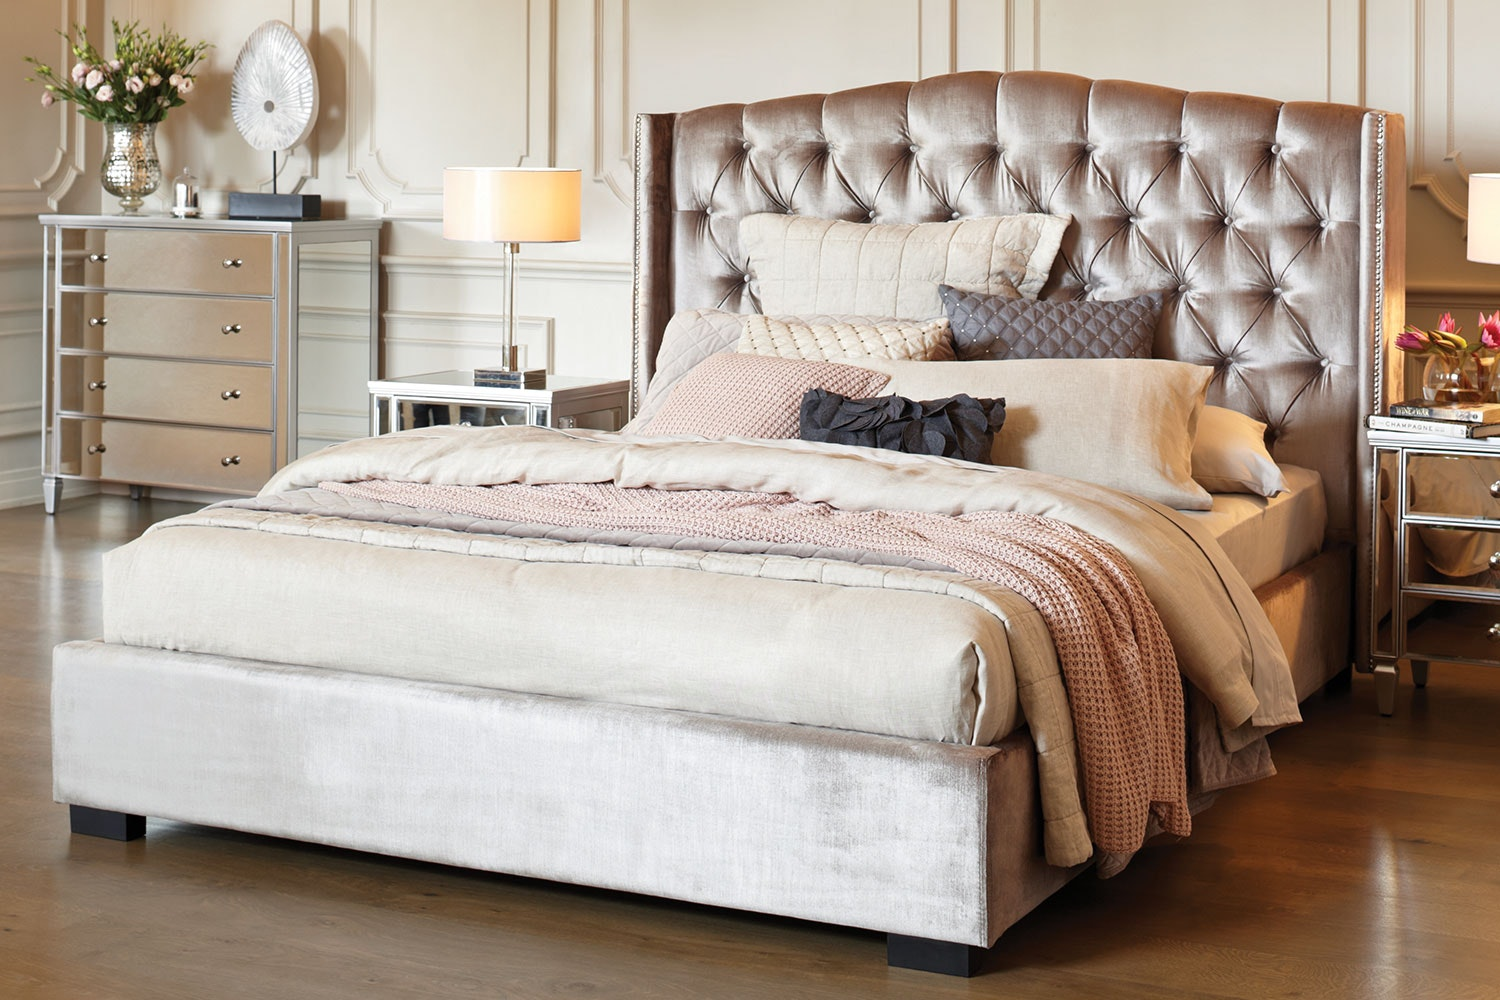 L'Amour Queen Bed Frame by Stoke Furniture